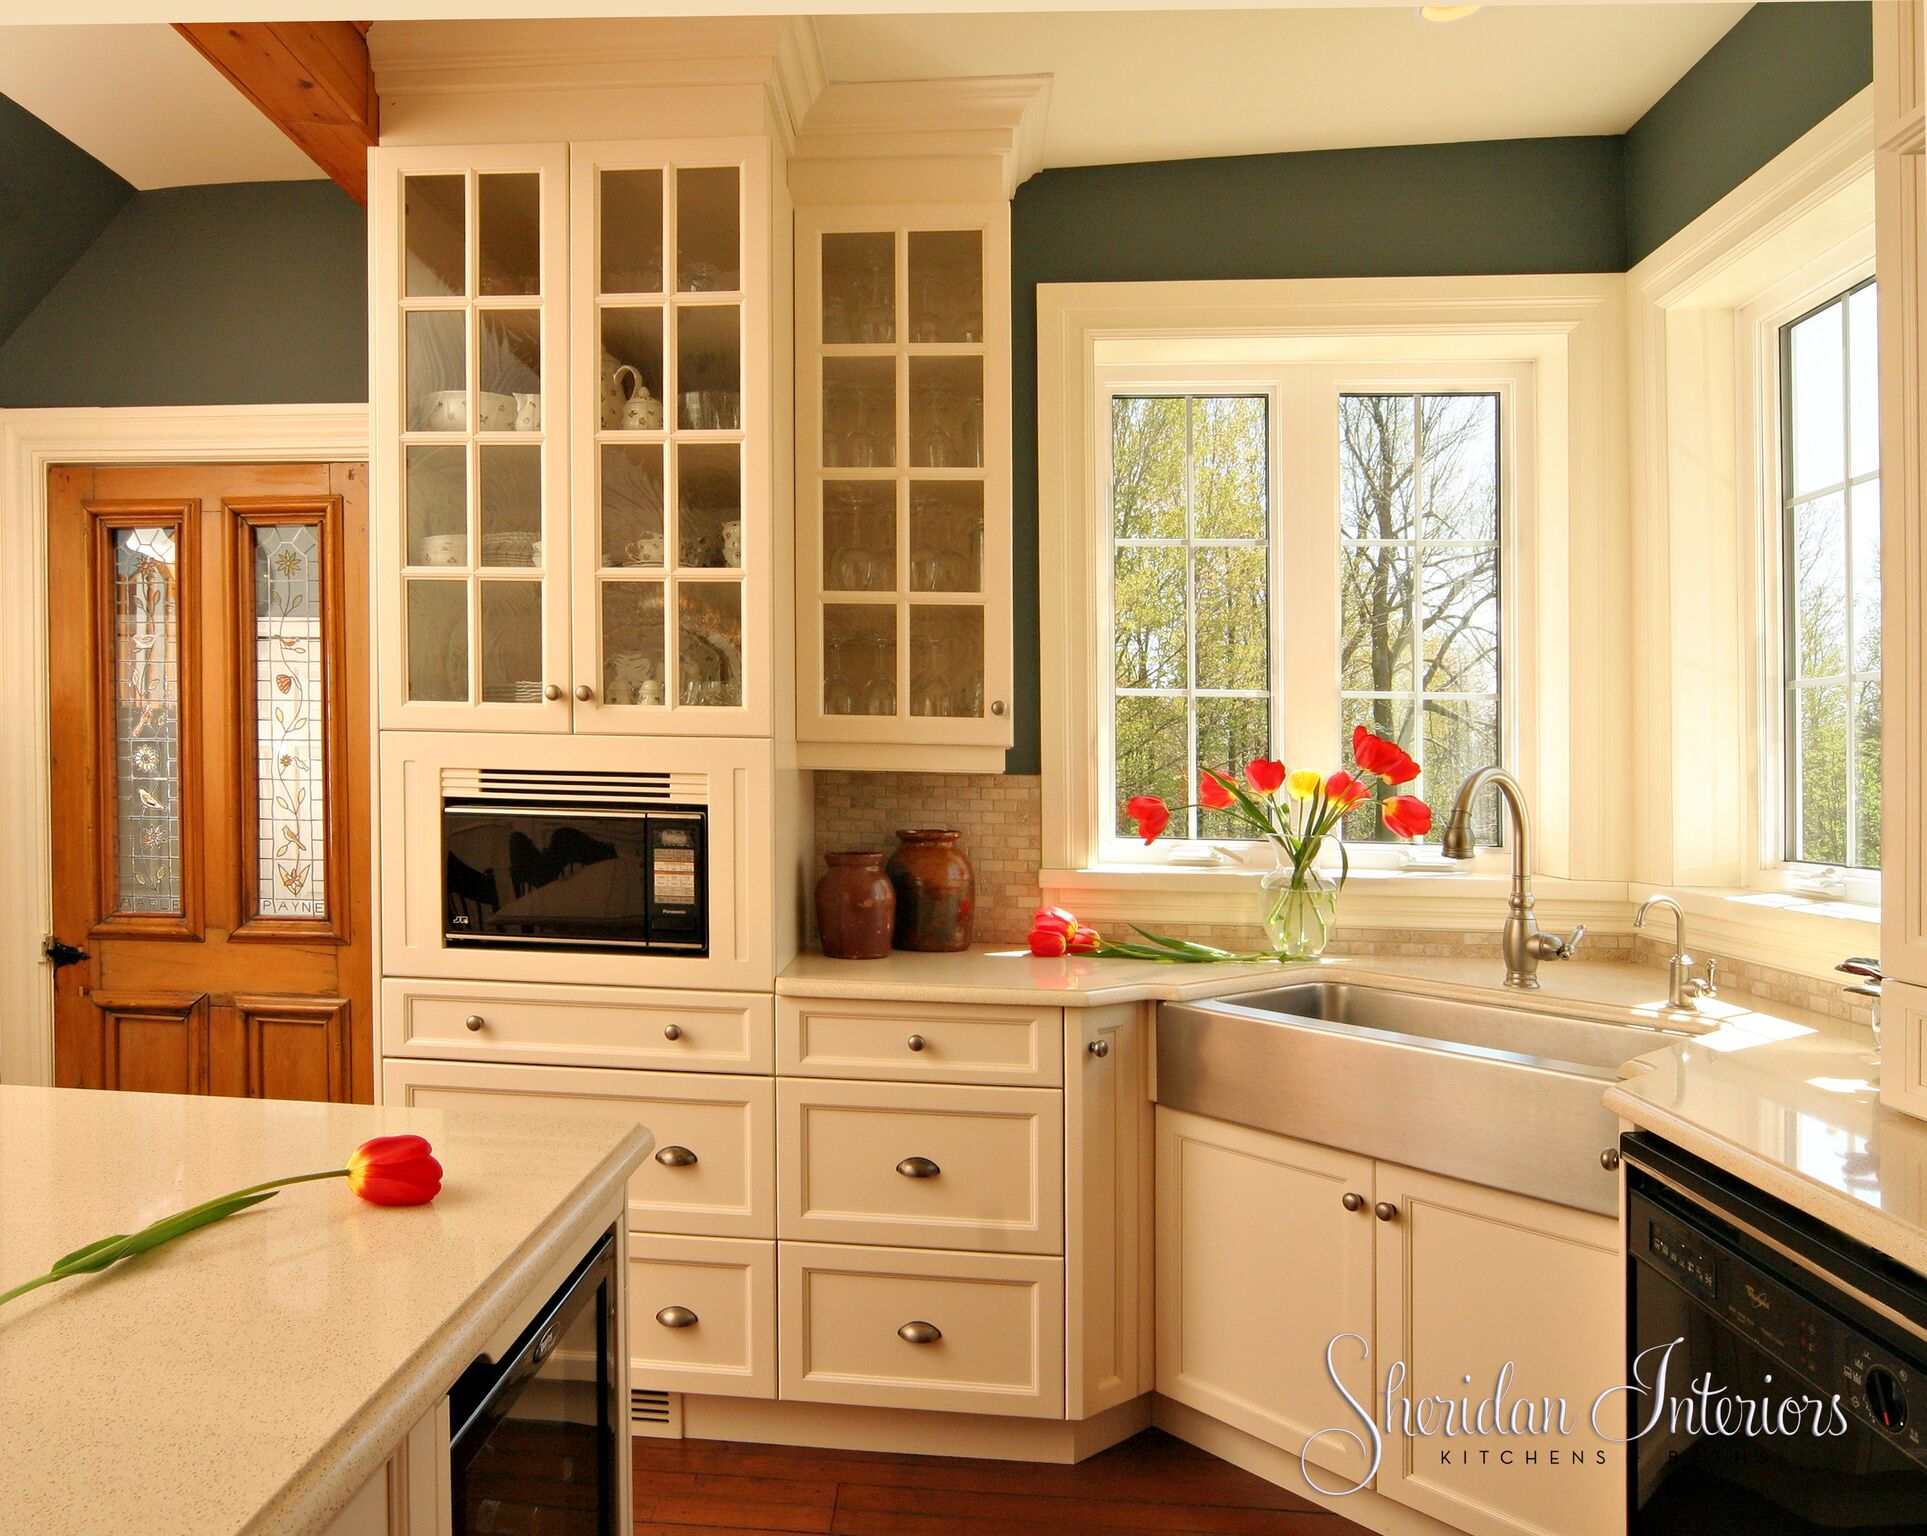 Country Kitchen with Farmhouse Sink - Sheridan Interiors